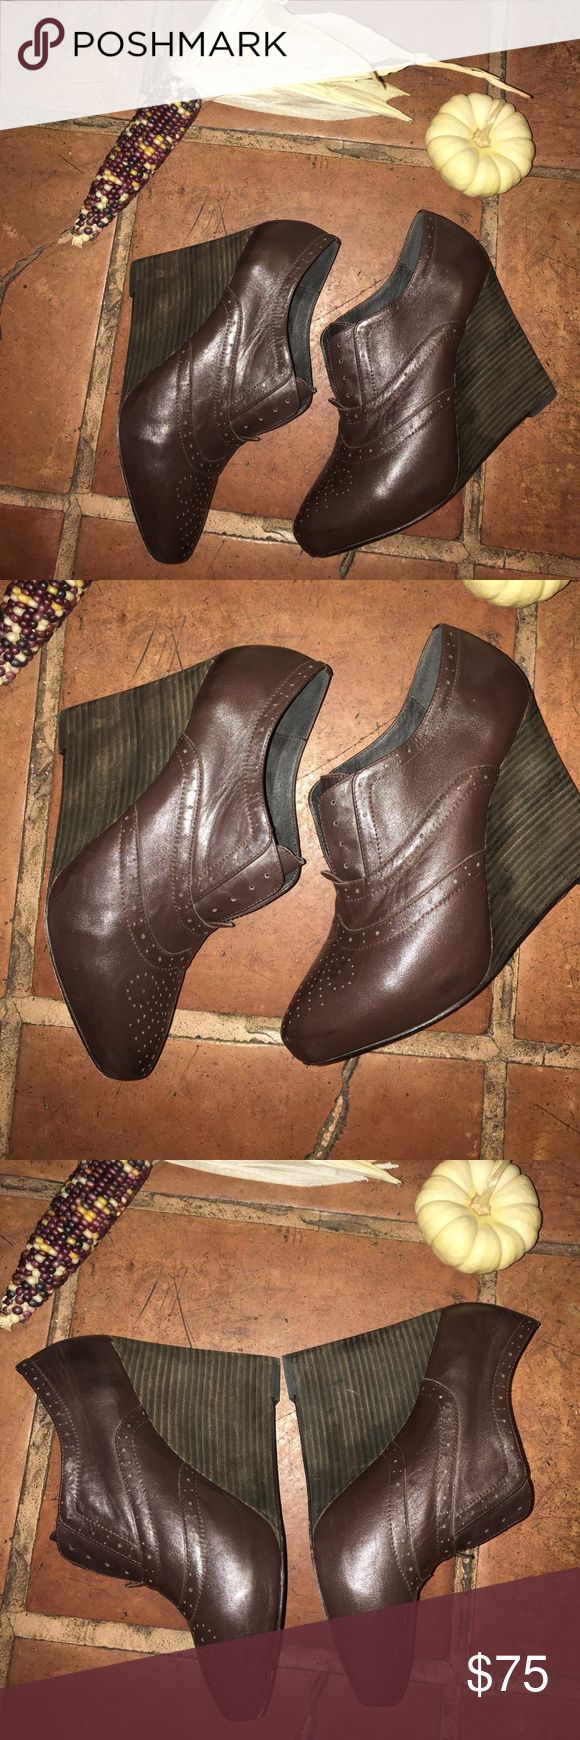 Joie Brown Leather Oxford Wedges size 39 EUC Joie Brown Leather Hello Goodbye Oxford Wedges size 39 Joie Shoes Wedges